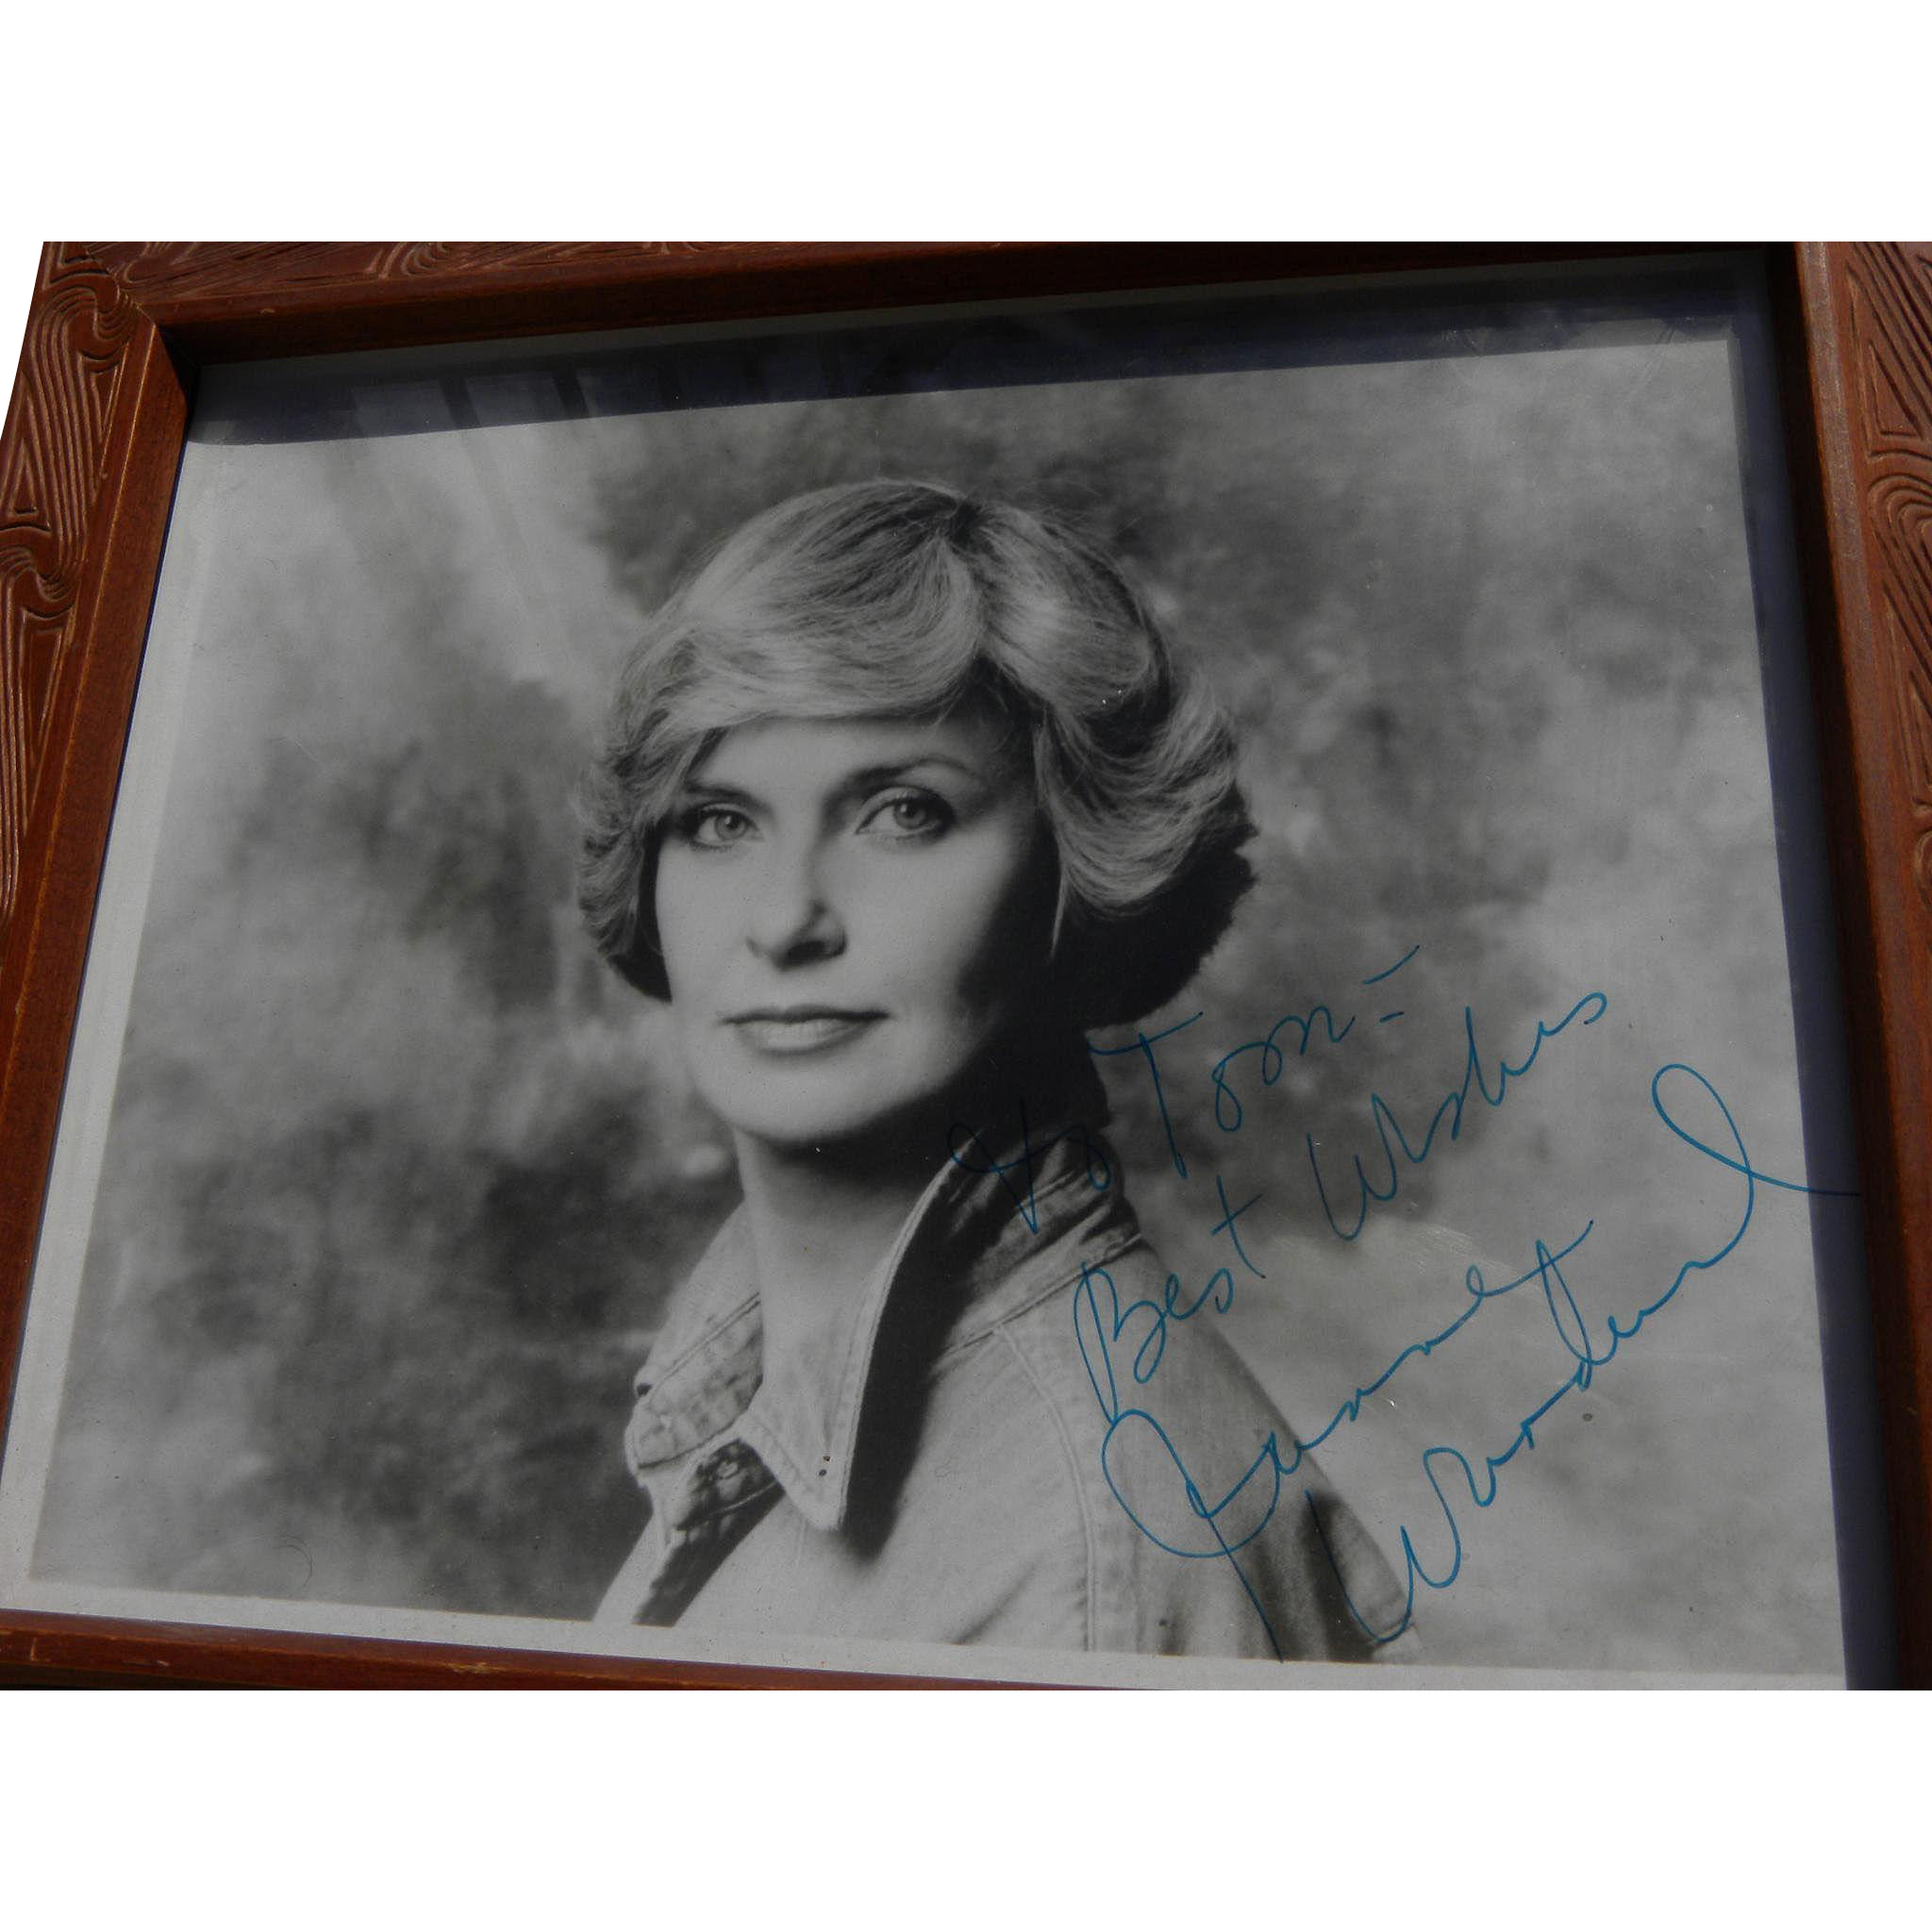 Joanne Woodward signed autographed black and white photo circa mid 1960's image